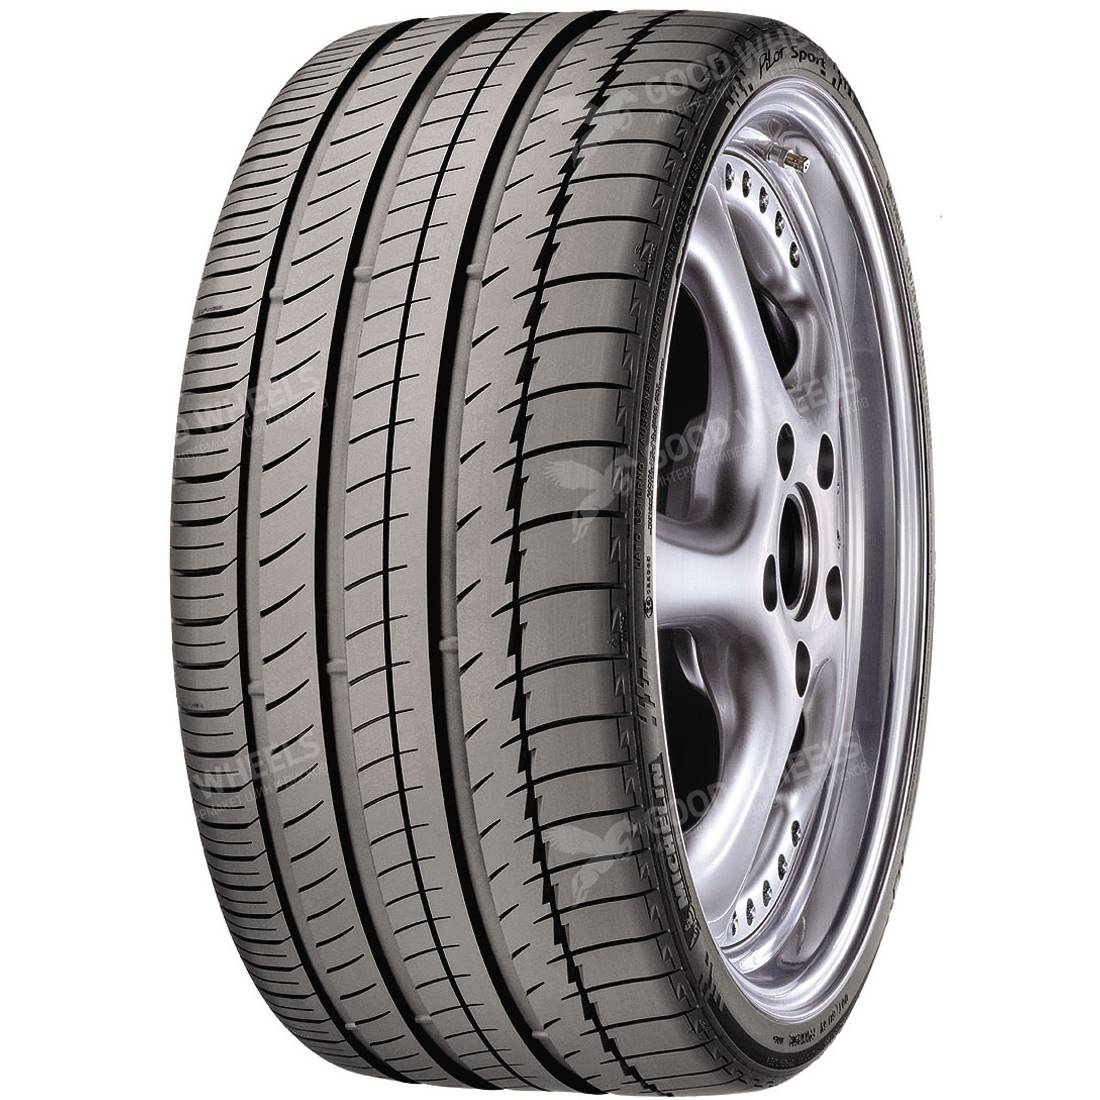 Michelin Pilot Sport 2 (PS2) 245/40 R19 94Y